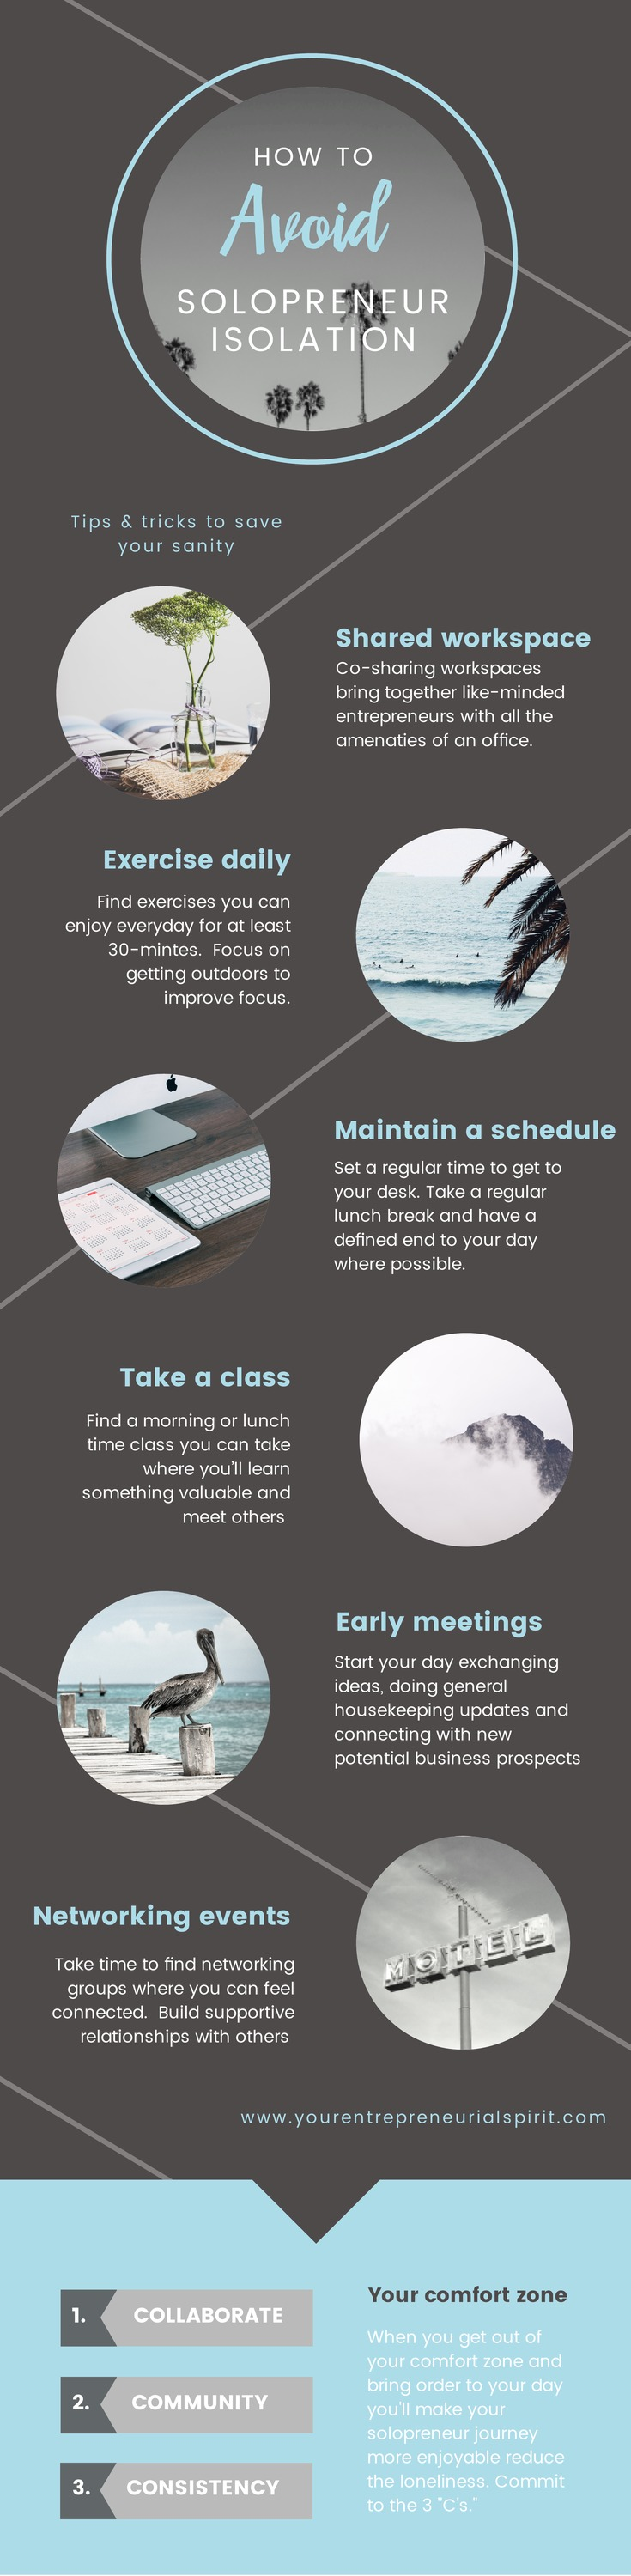 6 Tips to managing solopreneur loneliness - Inforgraphic